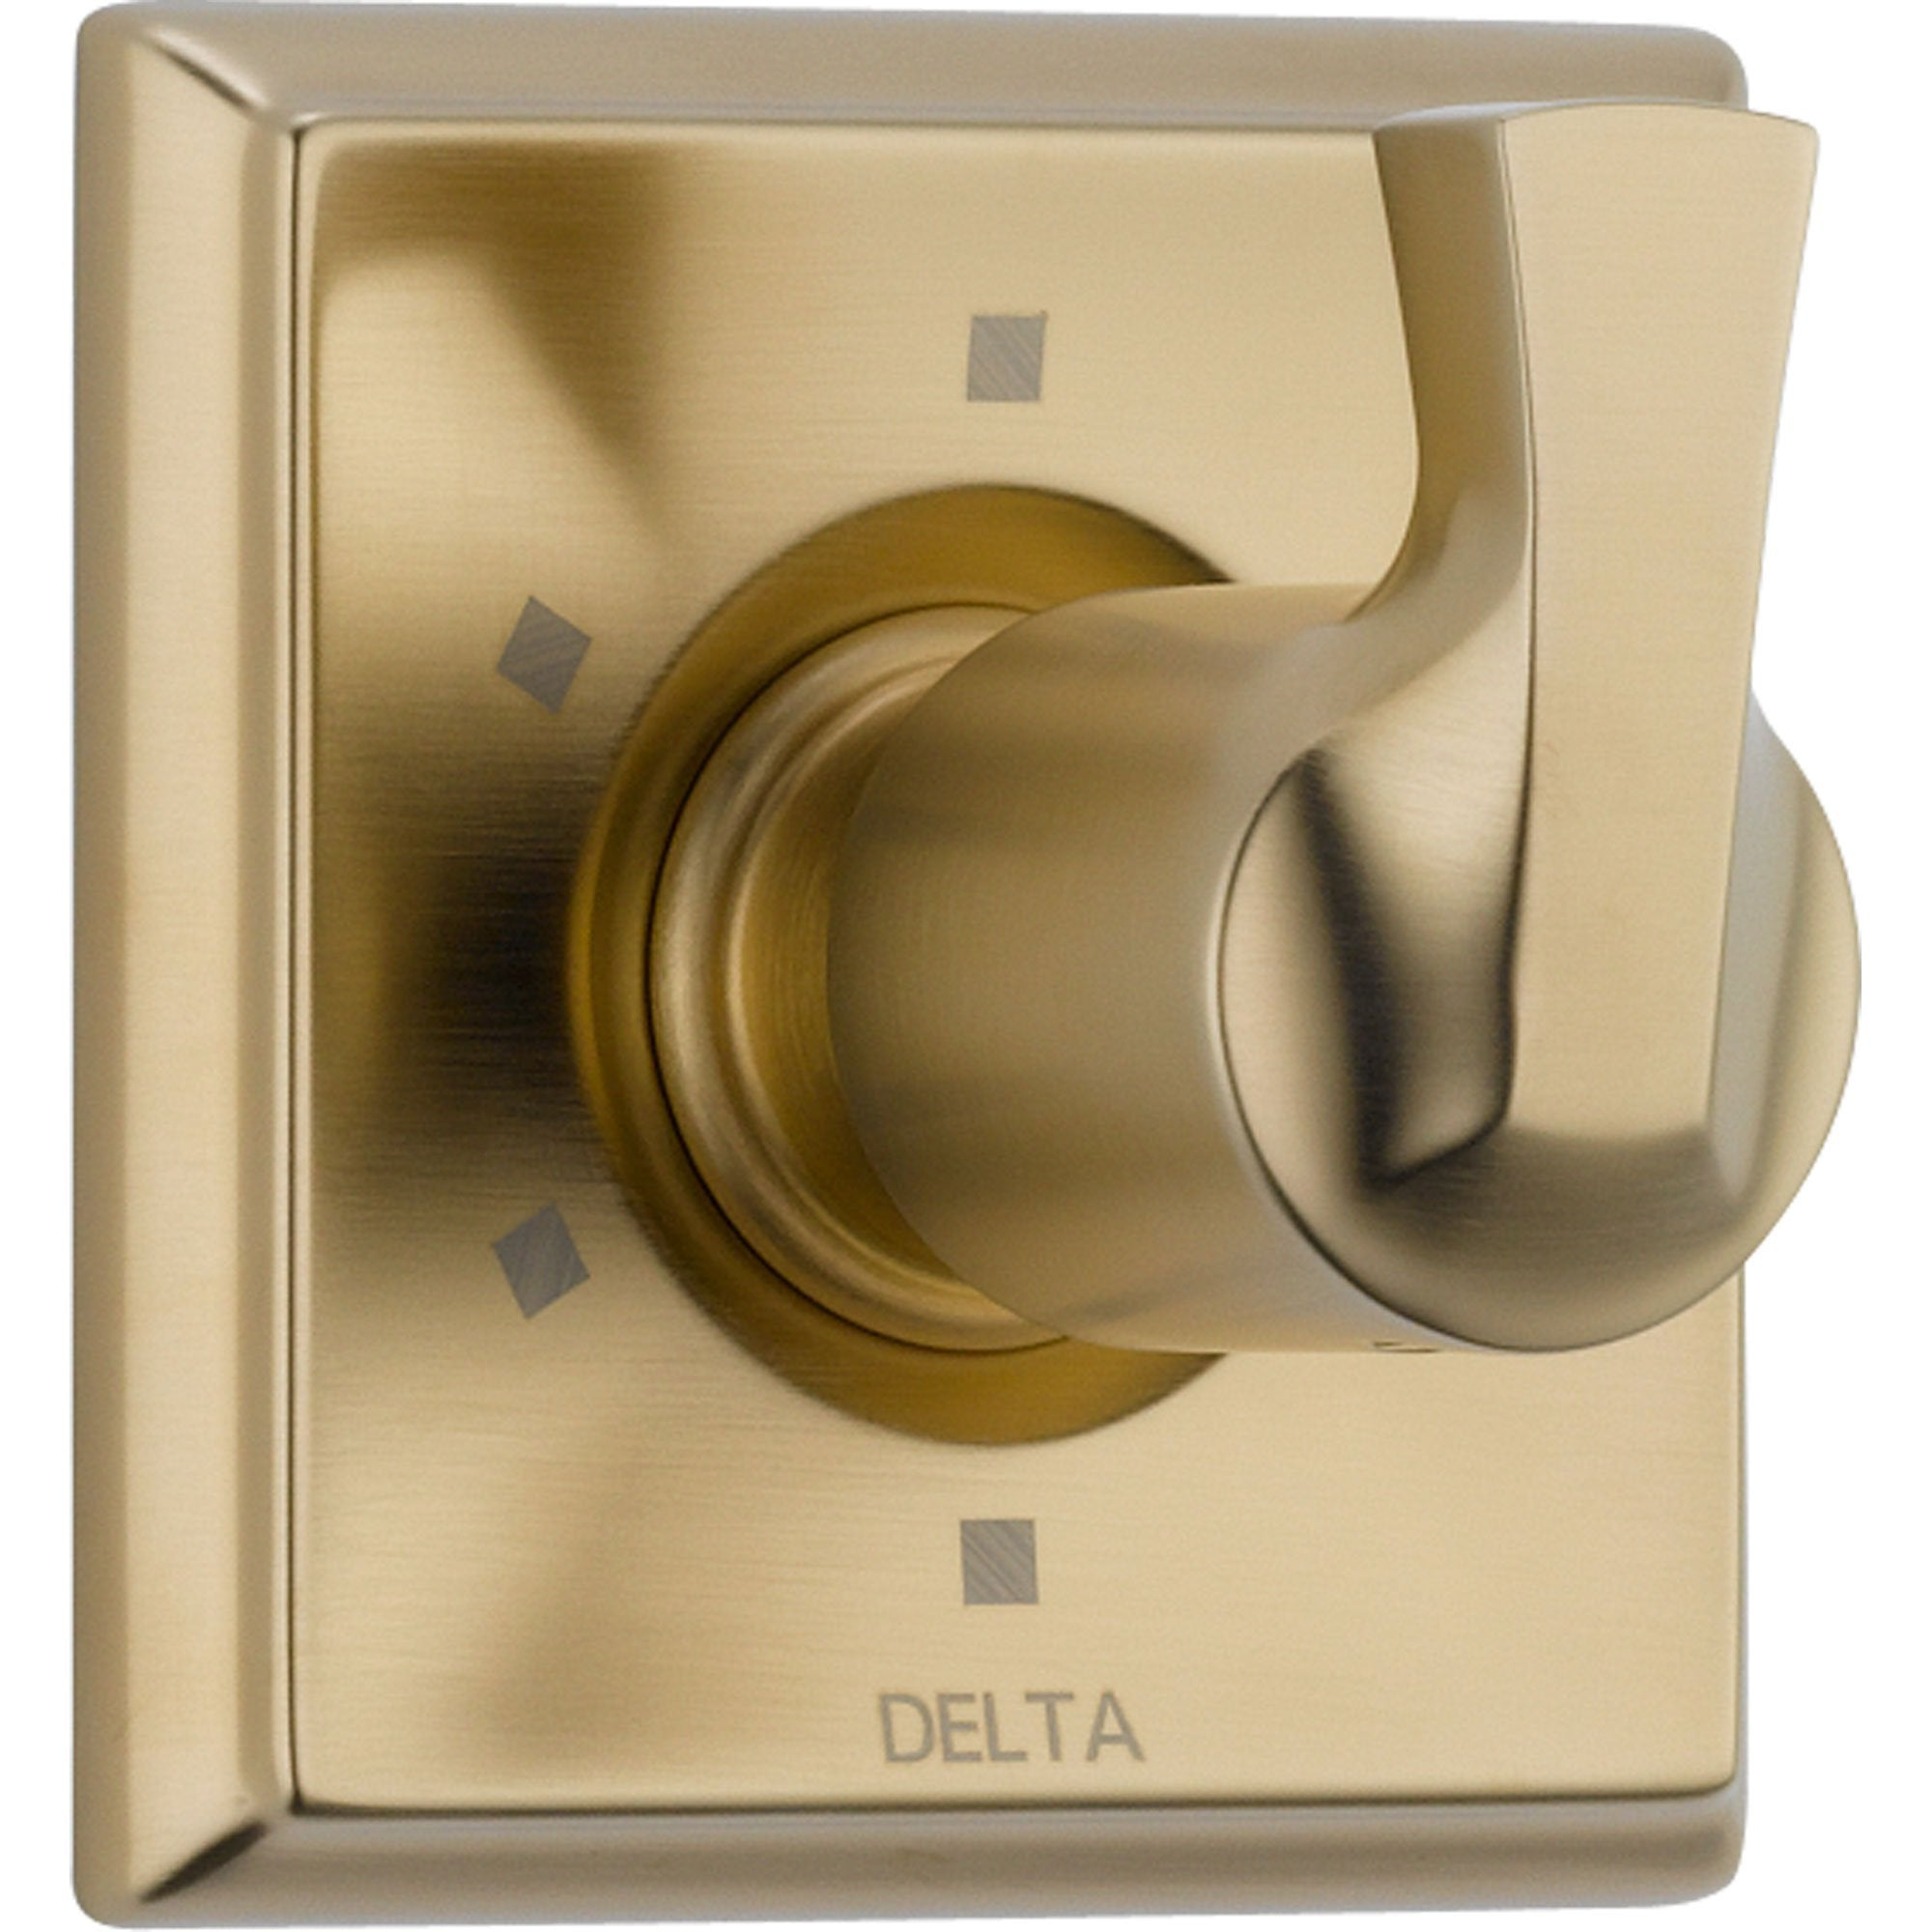 Delta 6-Setting Champagne Bronze Single Handle Shower Diverter Includes Rough-in Valve D2559V